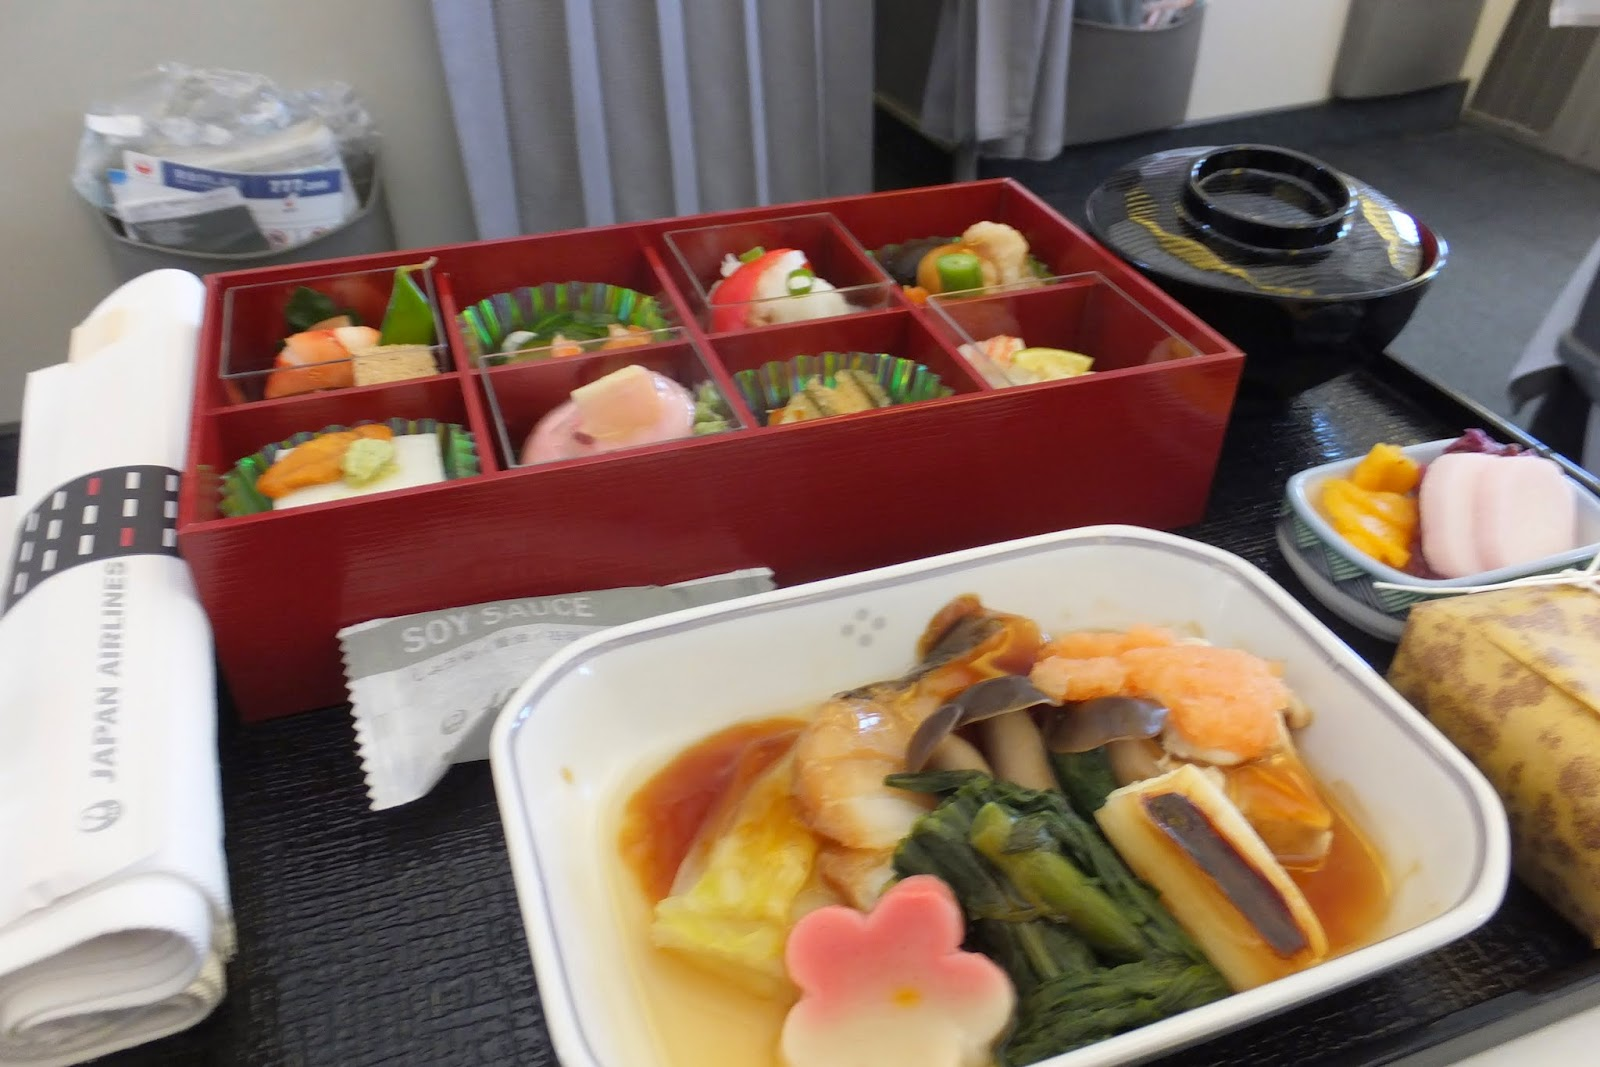 flight-meal-jl097-jal-business-class ビジネスクラスの機内食2